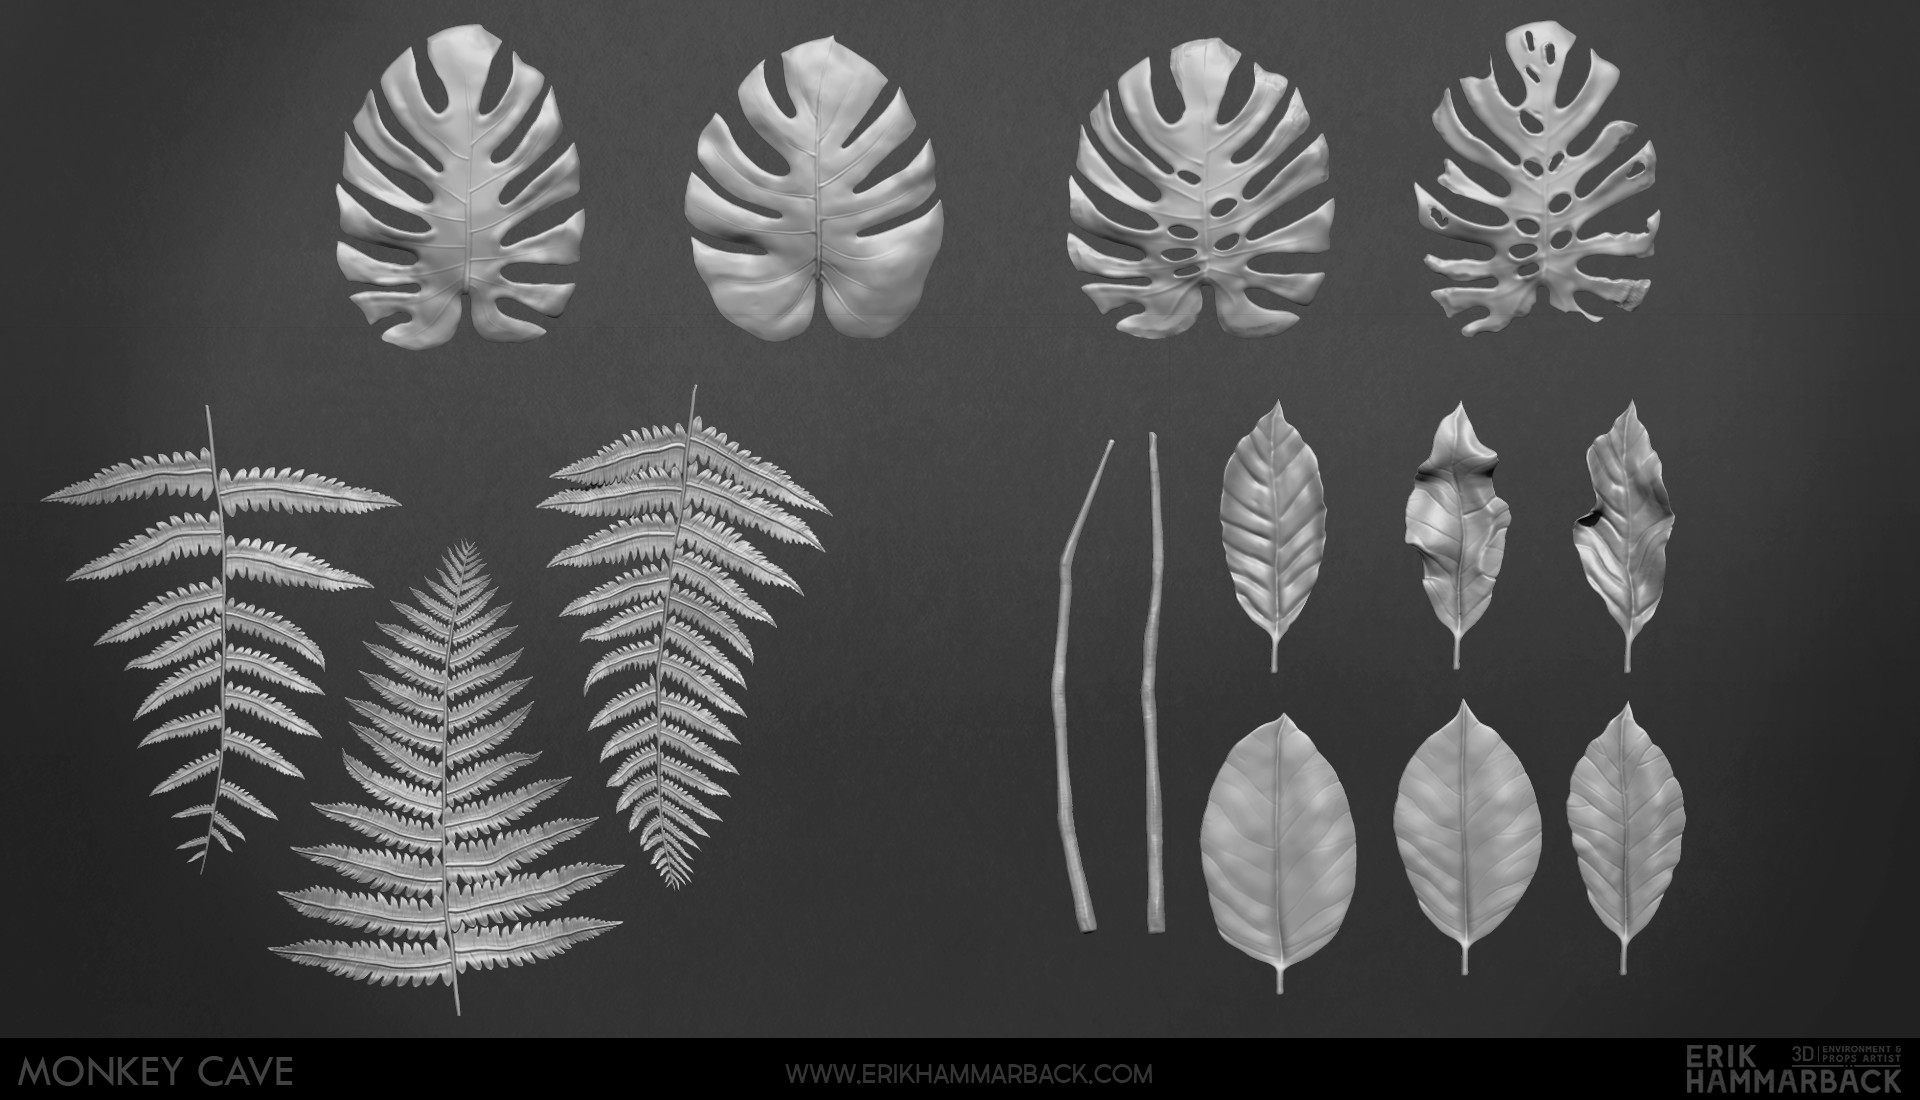 Erik hammarback erik hammarback jungle vegetation sculpts